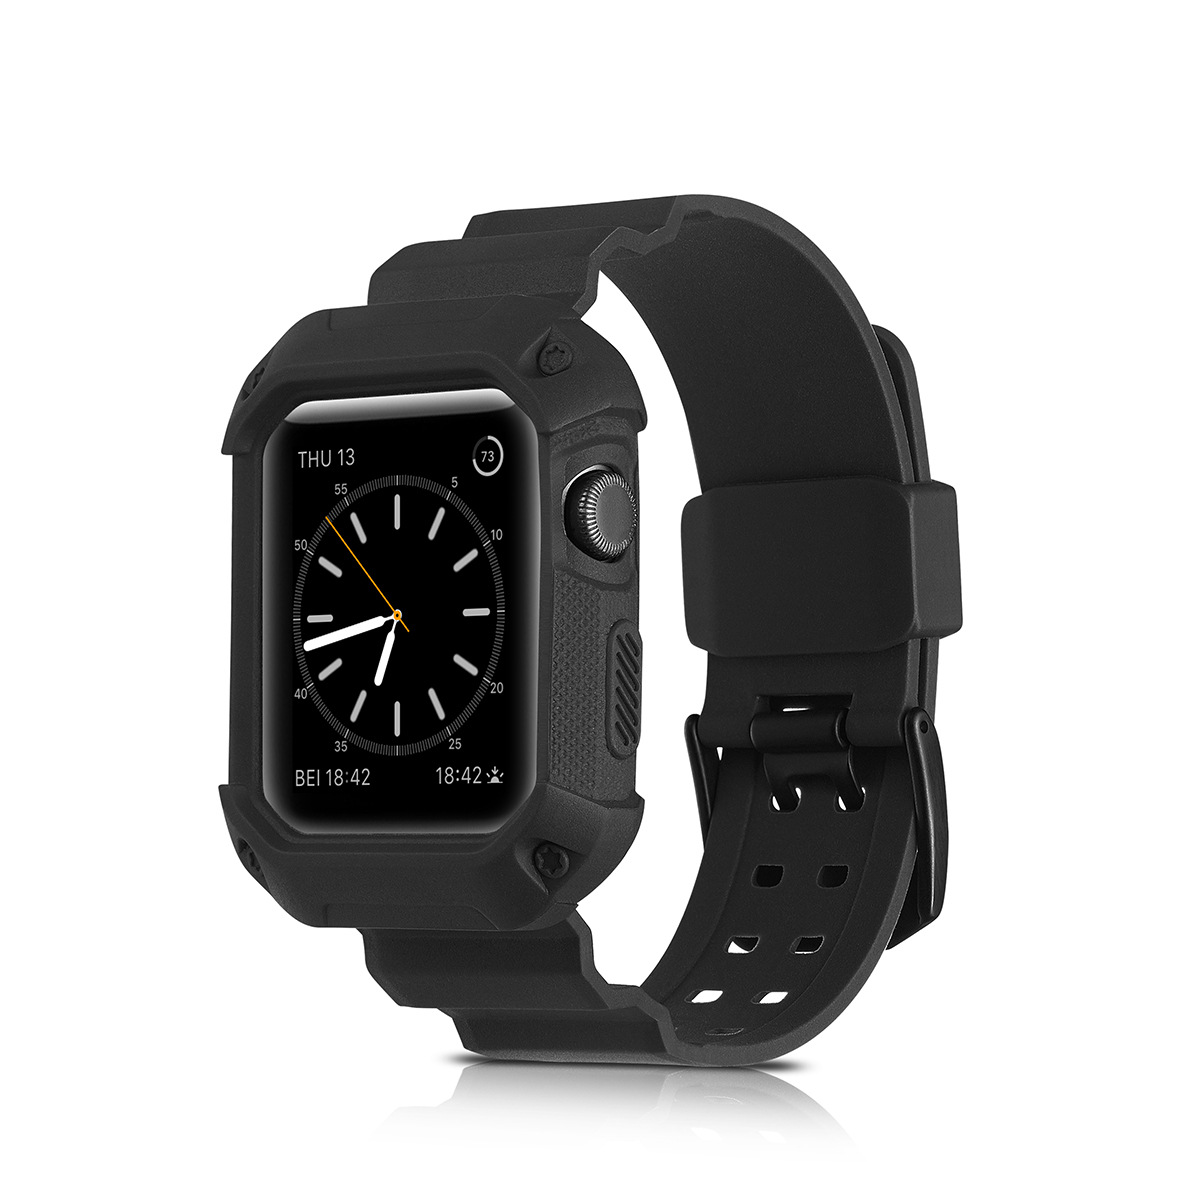 Suitable For Applewacth Apple Watch Strap IWatch Monochrome Silicone Watch Strap TPU One-piece Watch Strap Protective Case